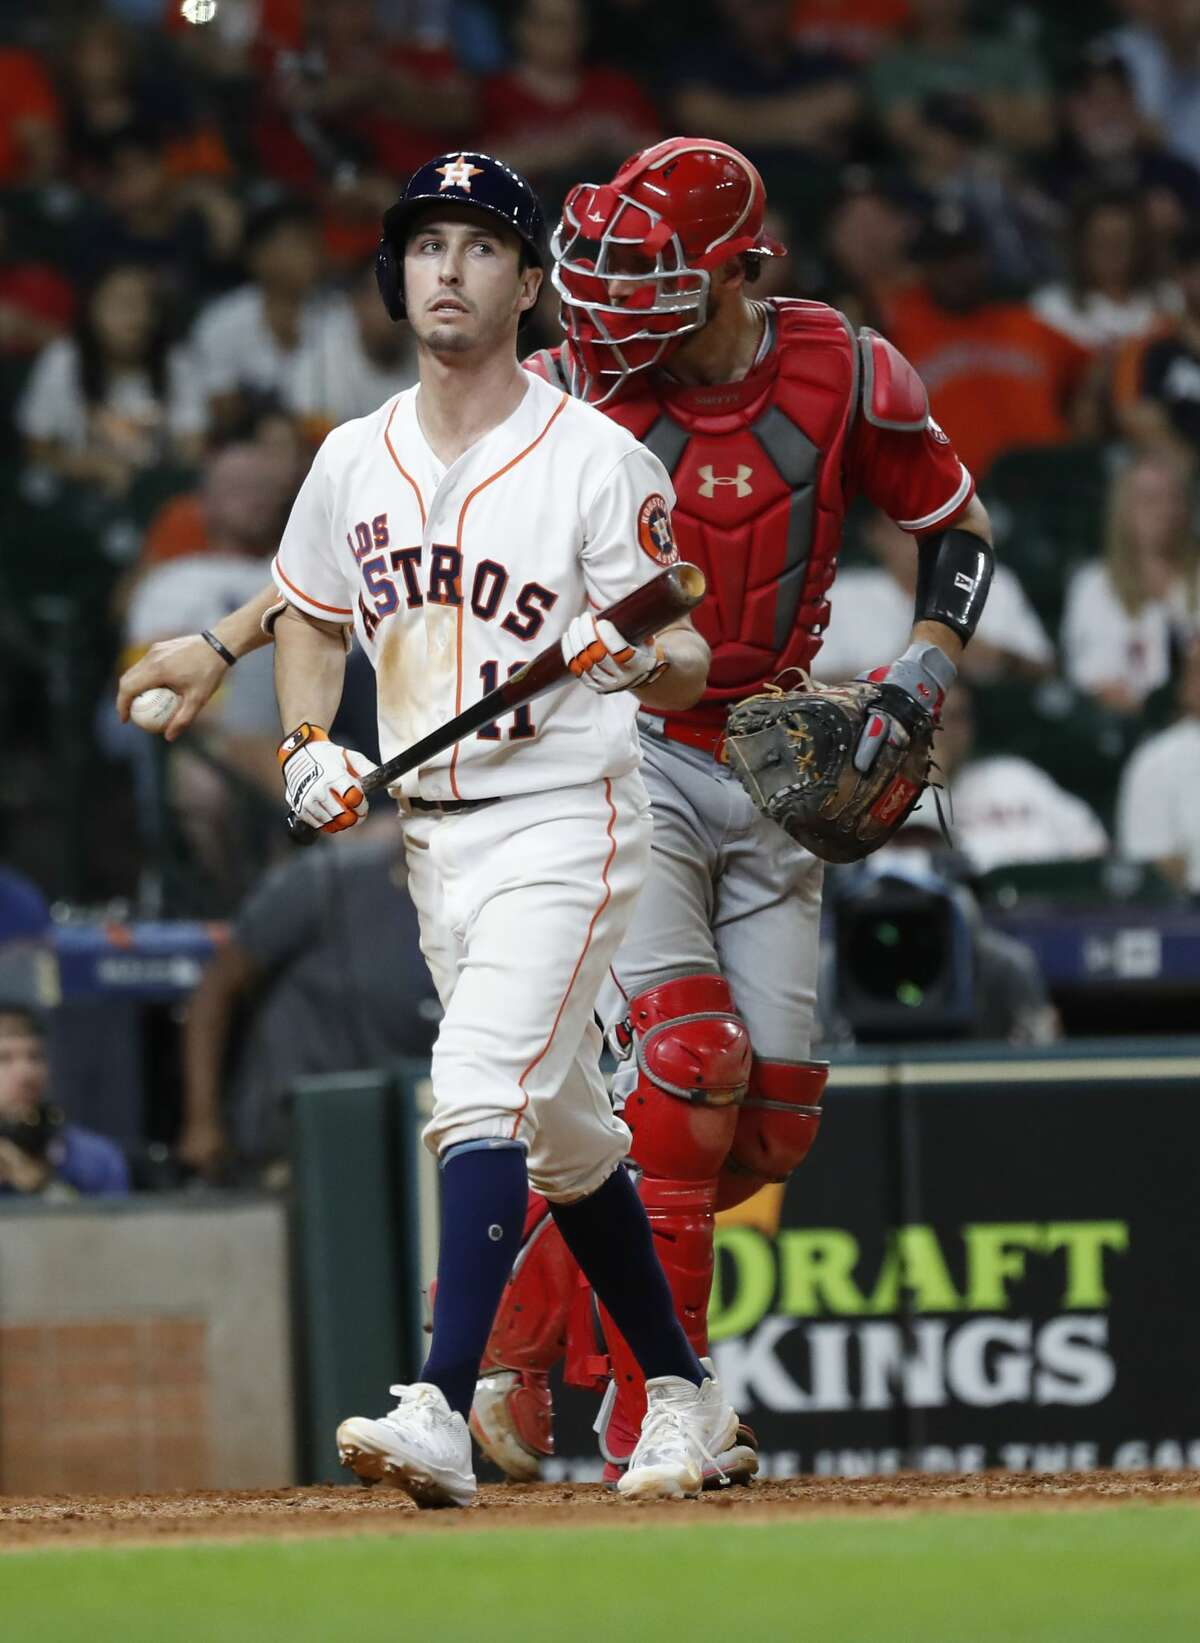 Houston Astros Garrett Stubbs (11) reacts after striking out to end an MLB baseball game at Minute Maid Park, Saturday, Sept. 21, 2019, in Houston. Los Angeles Angels beat the Astros 8-4.